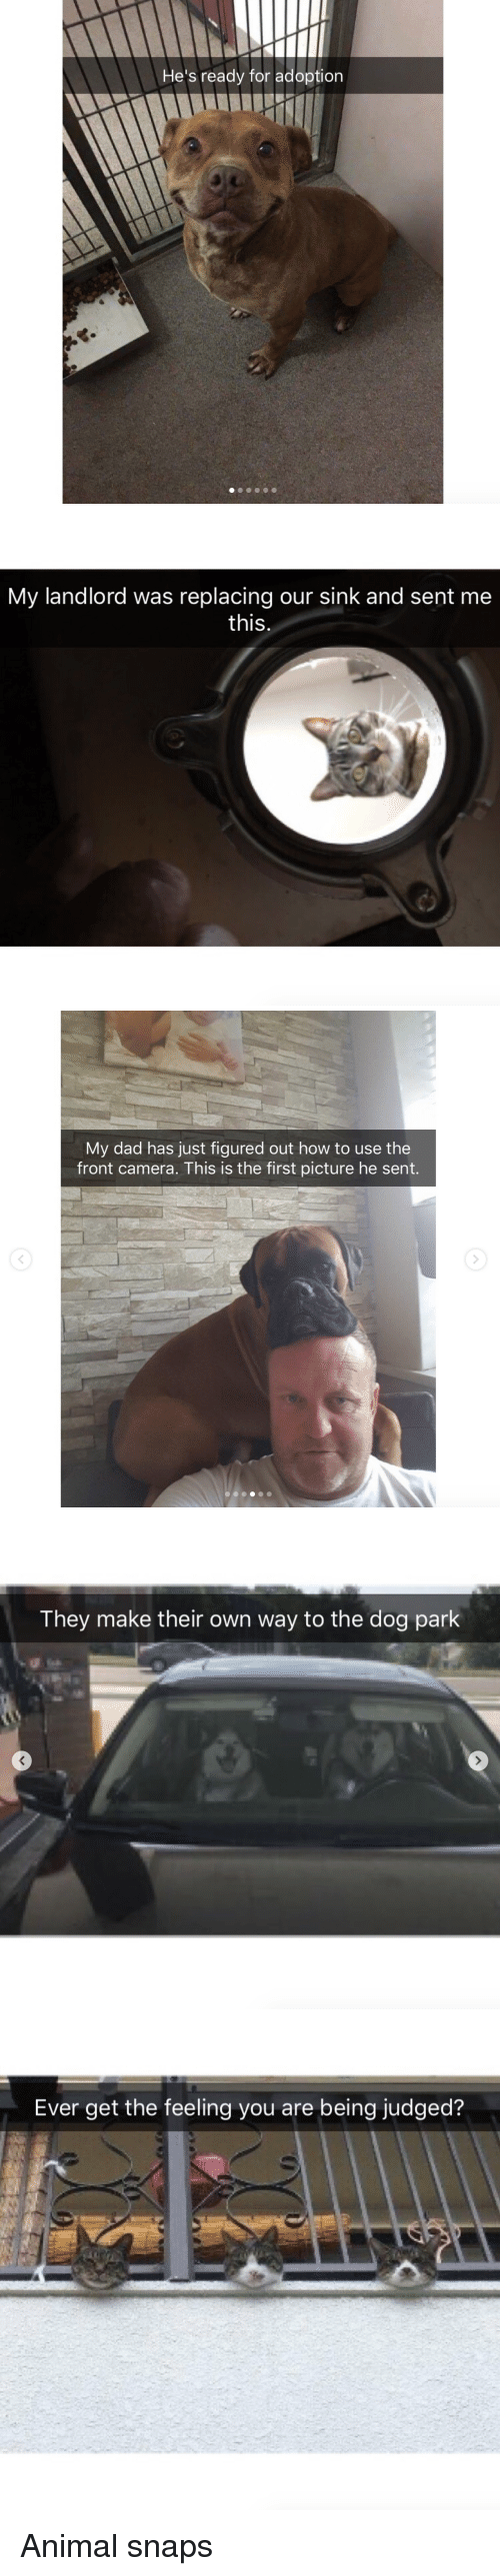 Dad, Animal, and Camera: He's ready for adoption   My landlord was replacing our sink and sent me  this  C)   My dad has just figured out how to use the  front camera. This is the first picture he sent.   They make their own way to the dog park   Ever get the feeling you are being judged? <p>Animal snaps<br/></p>